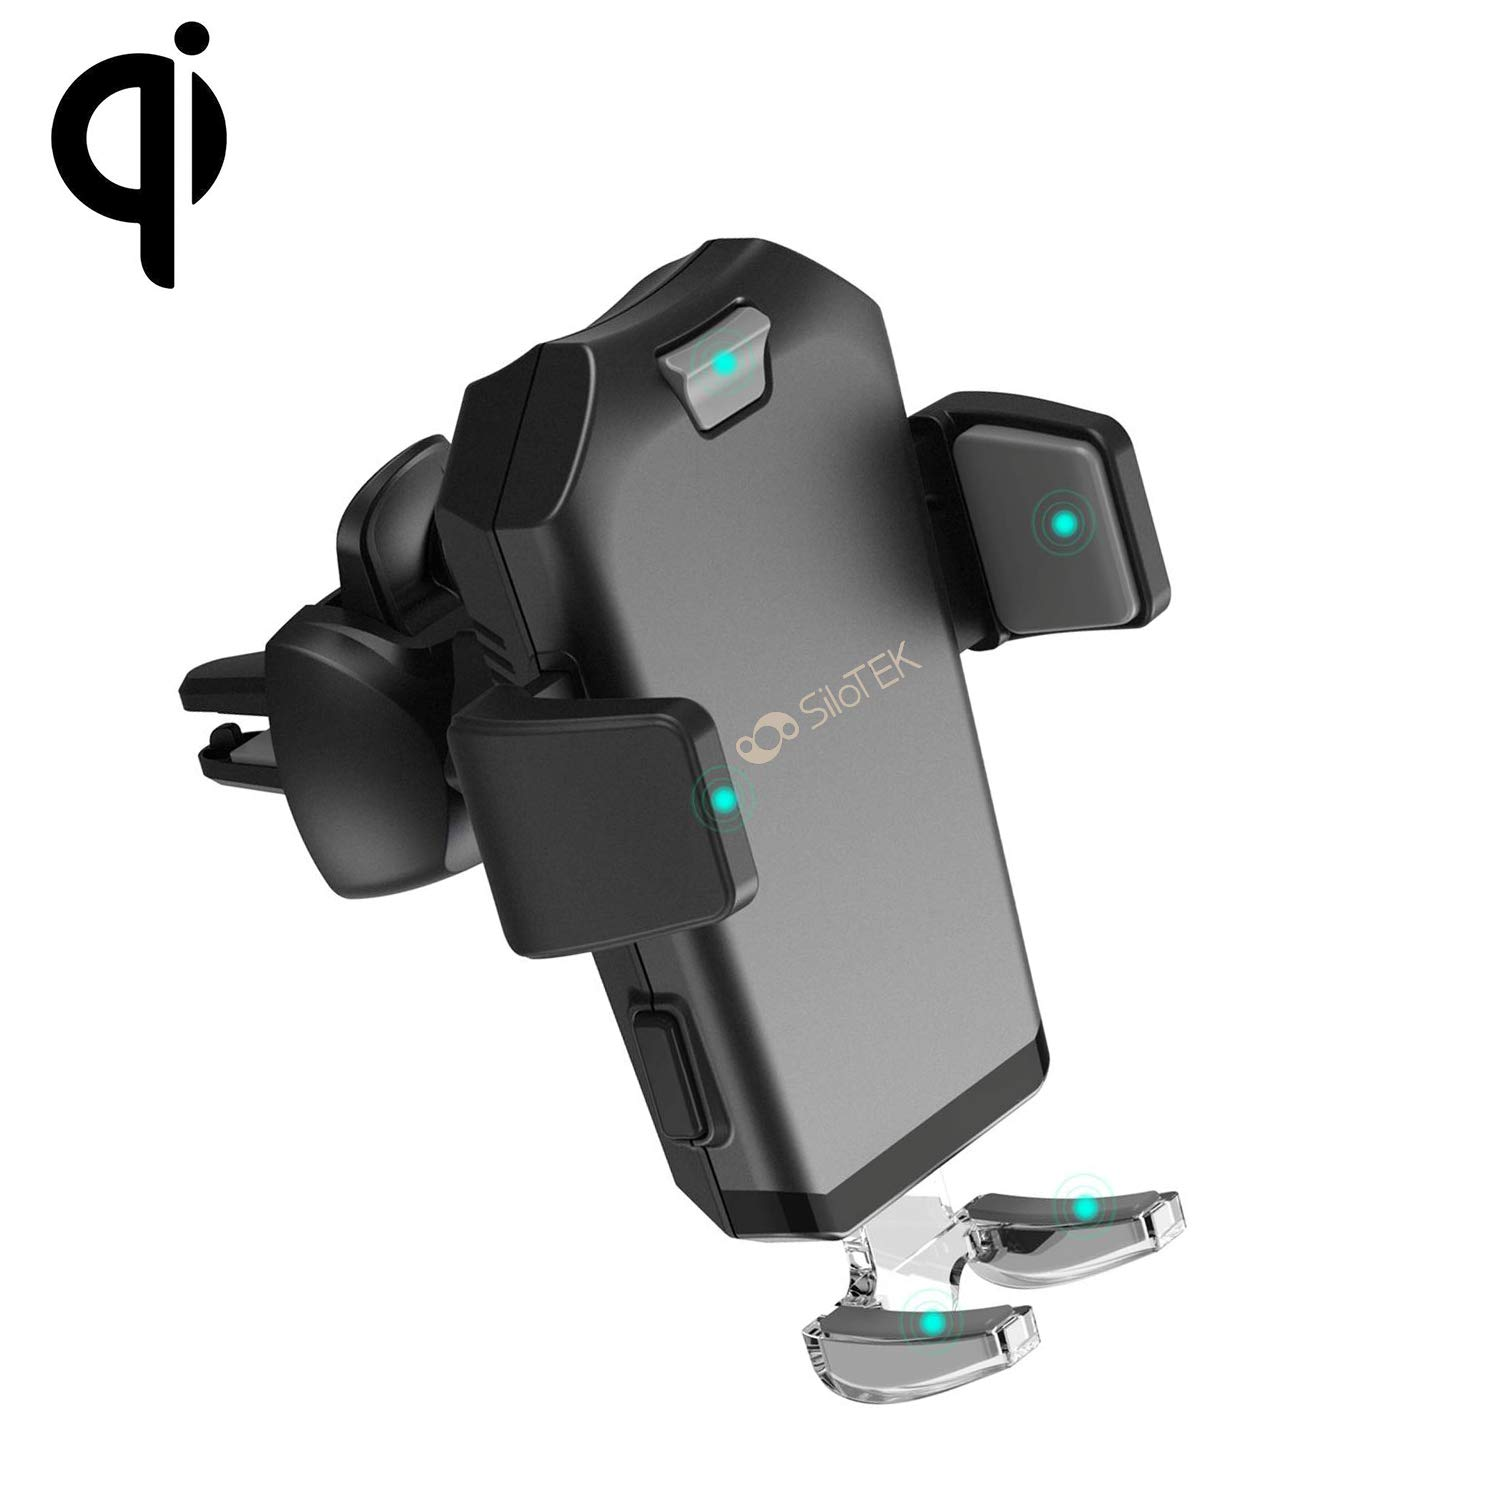 SiloTEK Wireless Car Charger Mount Qi Fast Charging Adjustable Gravity Air Vent Automatic Phone Holder Compatible with iPhone8/ 8 Plus/X/XS/XS Max/XR Galaxy S8/S9/S8+/S9+/Note 8 (Black)